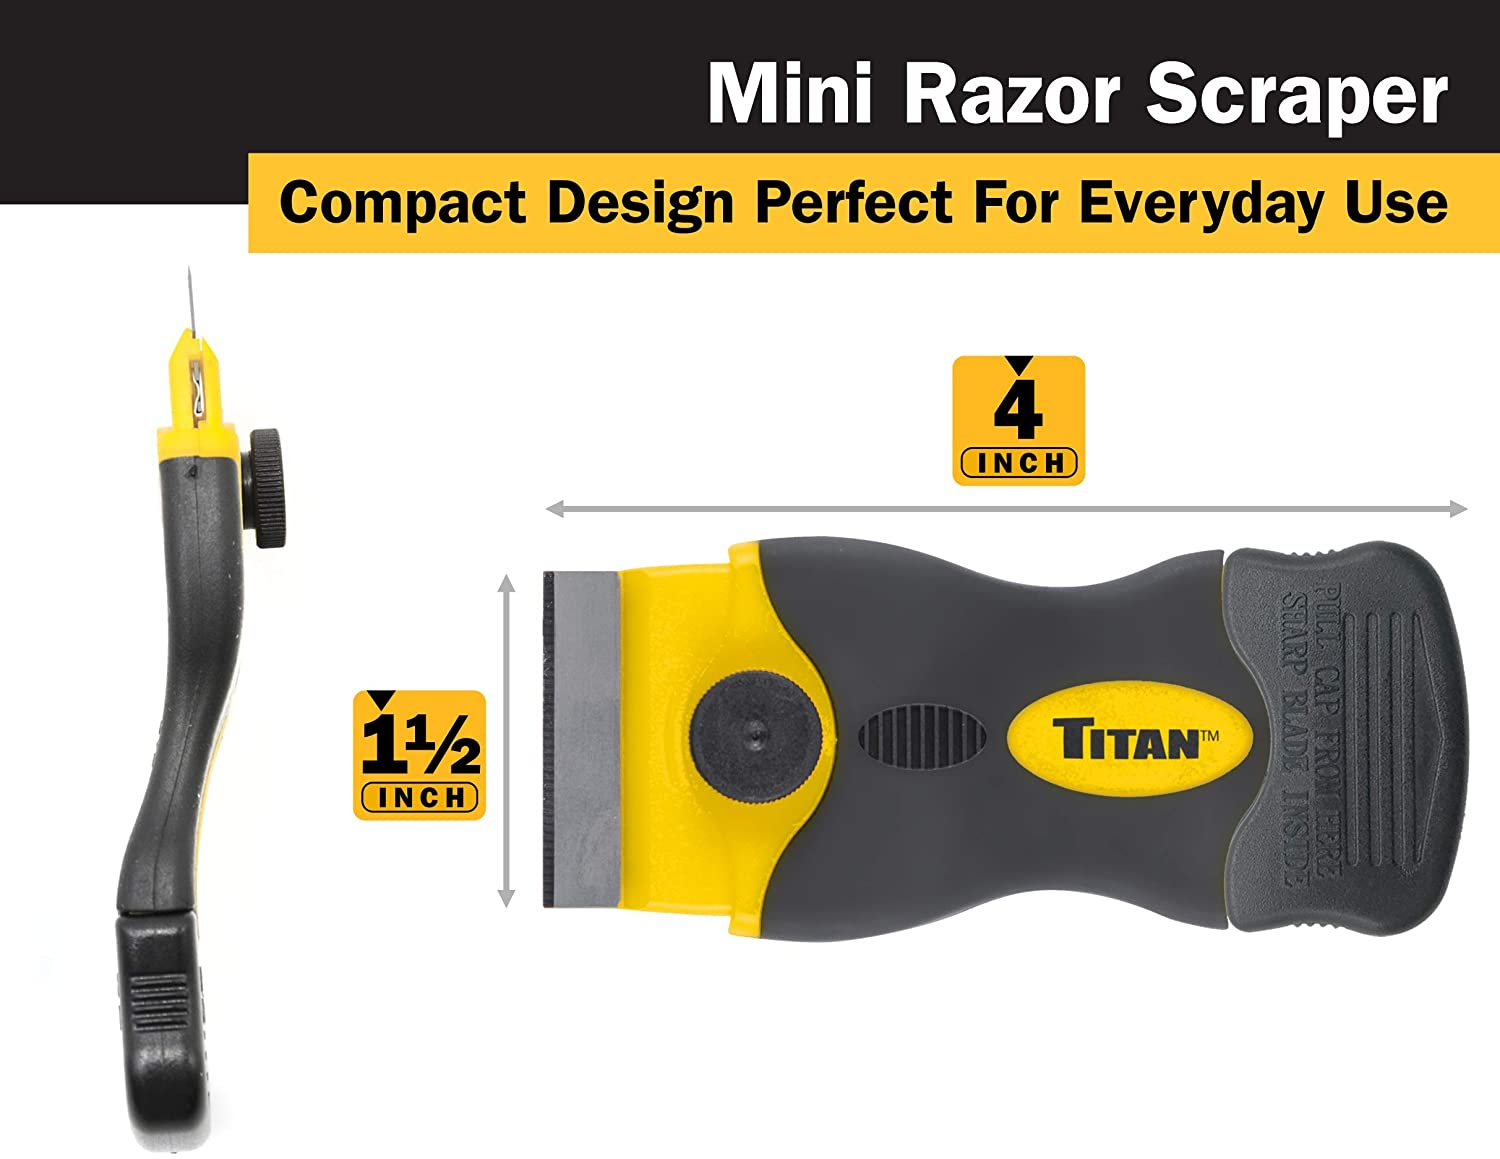 Titan 12031 Mini Razor Scraper with 22 Extra-Heavy Duty Razor Blades